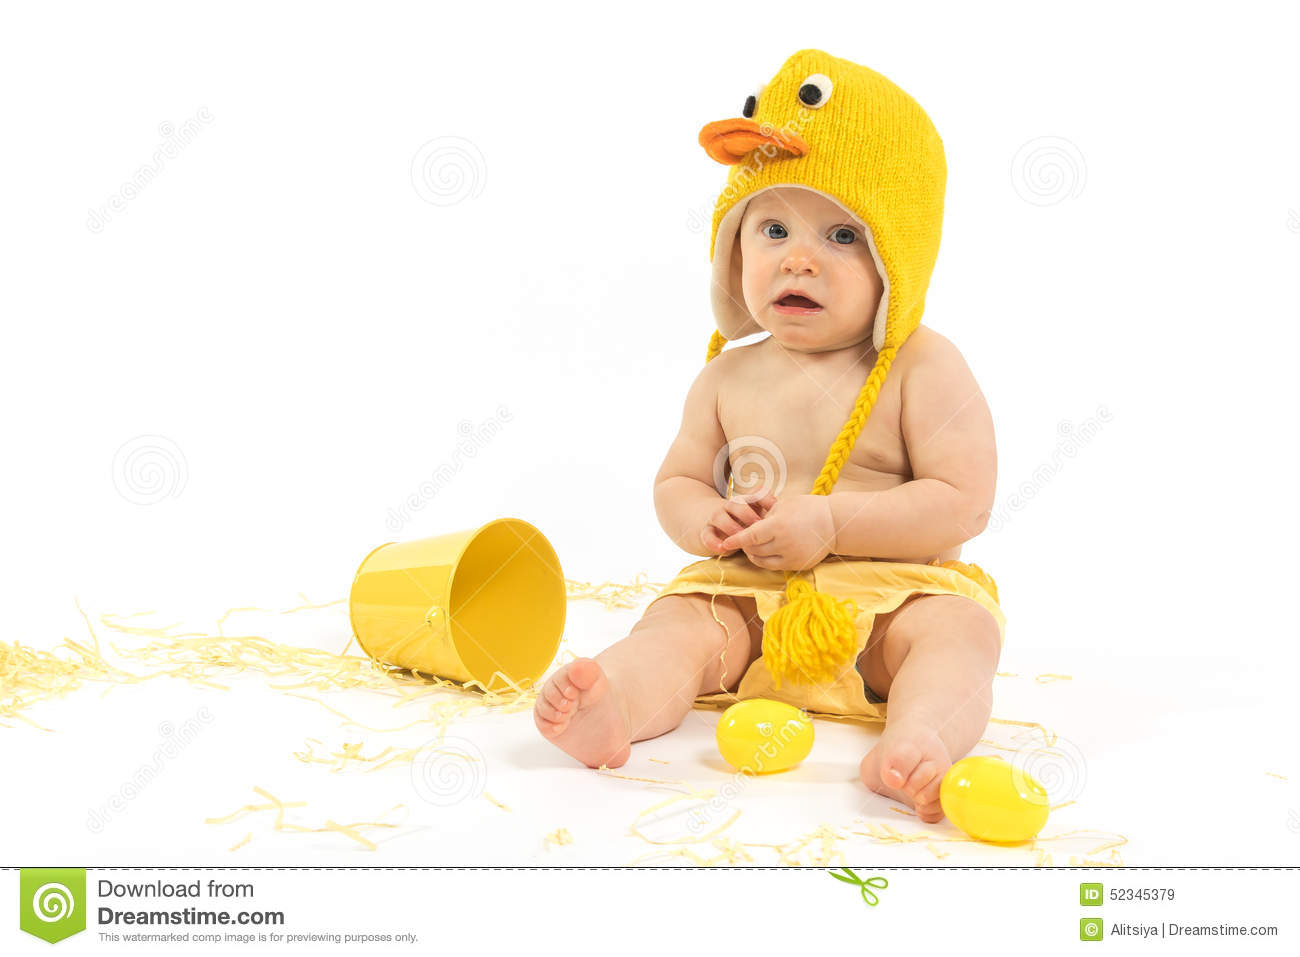 25edc7bb0 Easter Baby In Duck Costume Stock Image - Image of disguise, duck ...